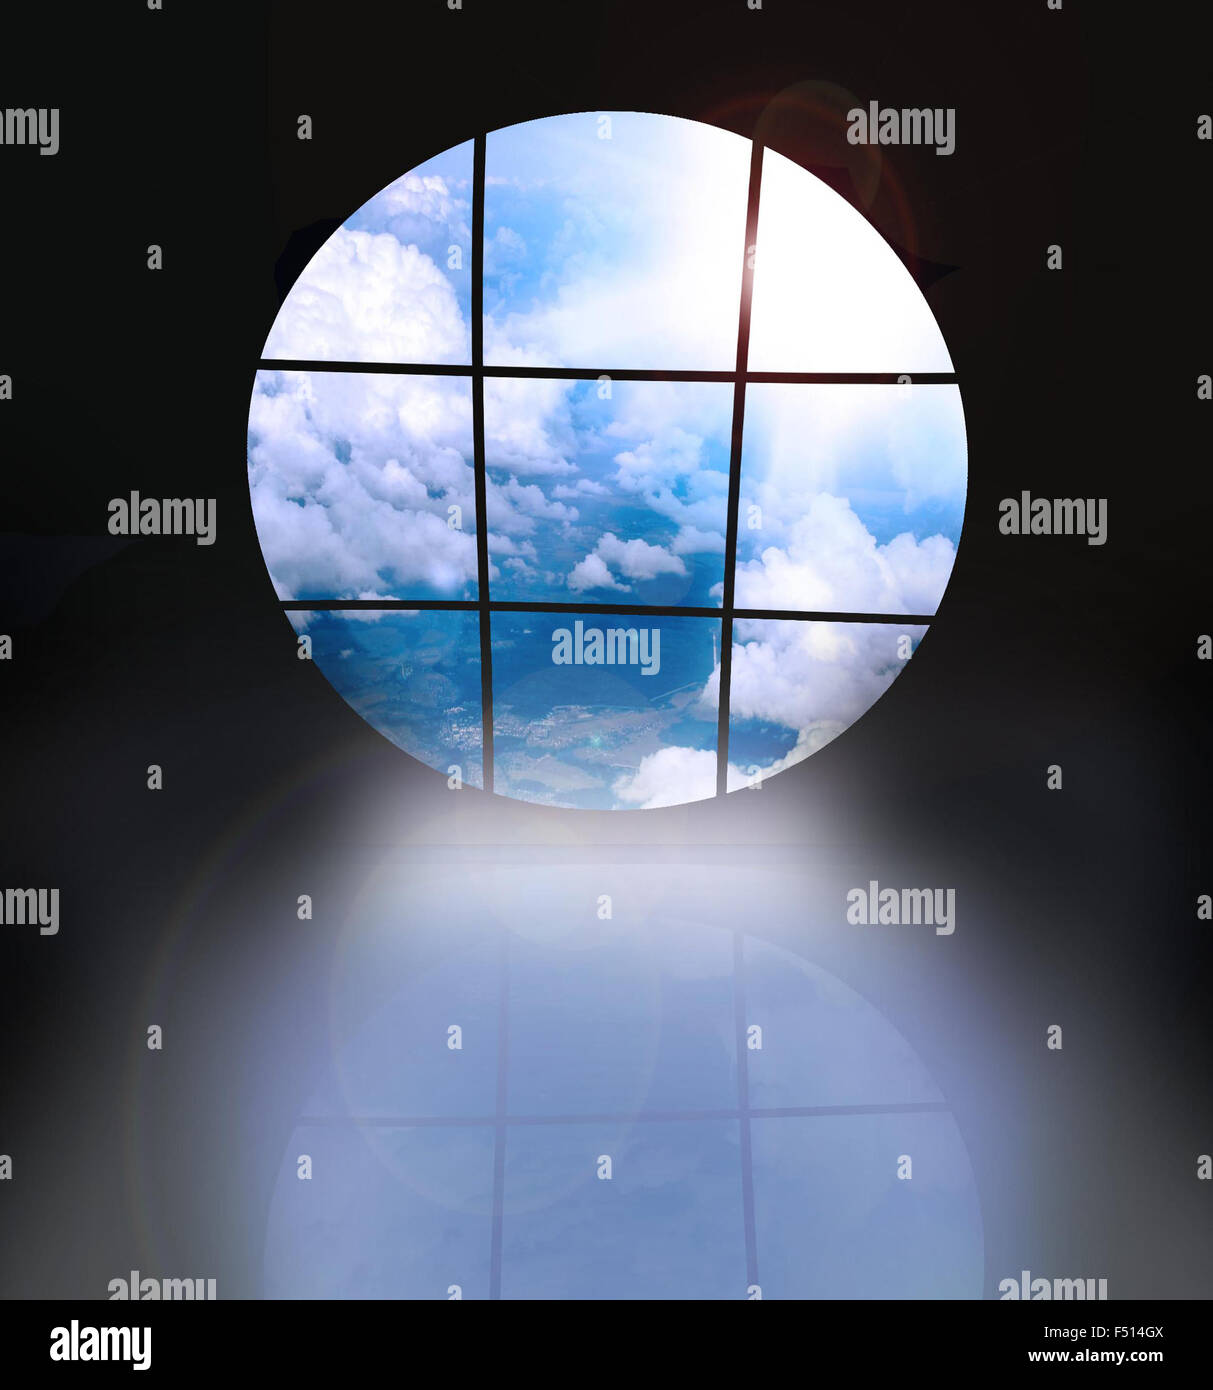 dark room with screens showing a blue sky - Stock Image